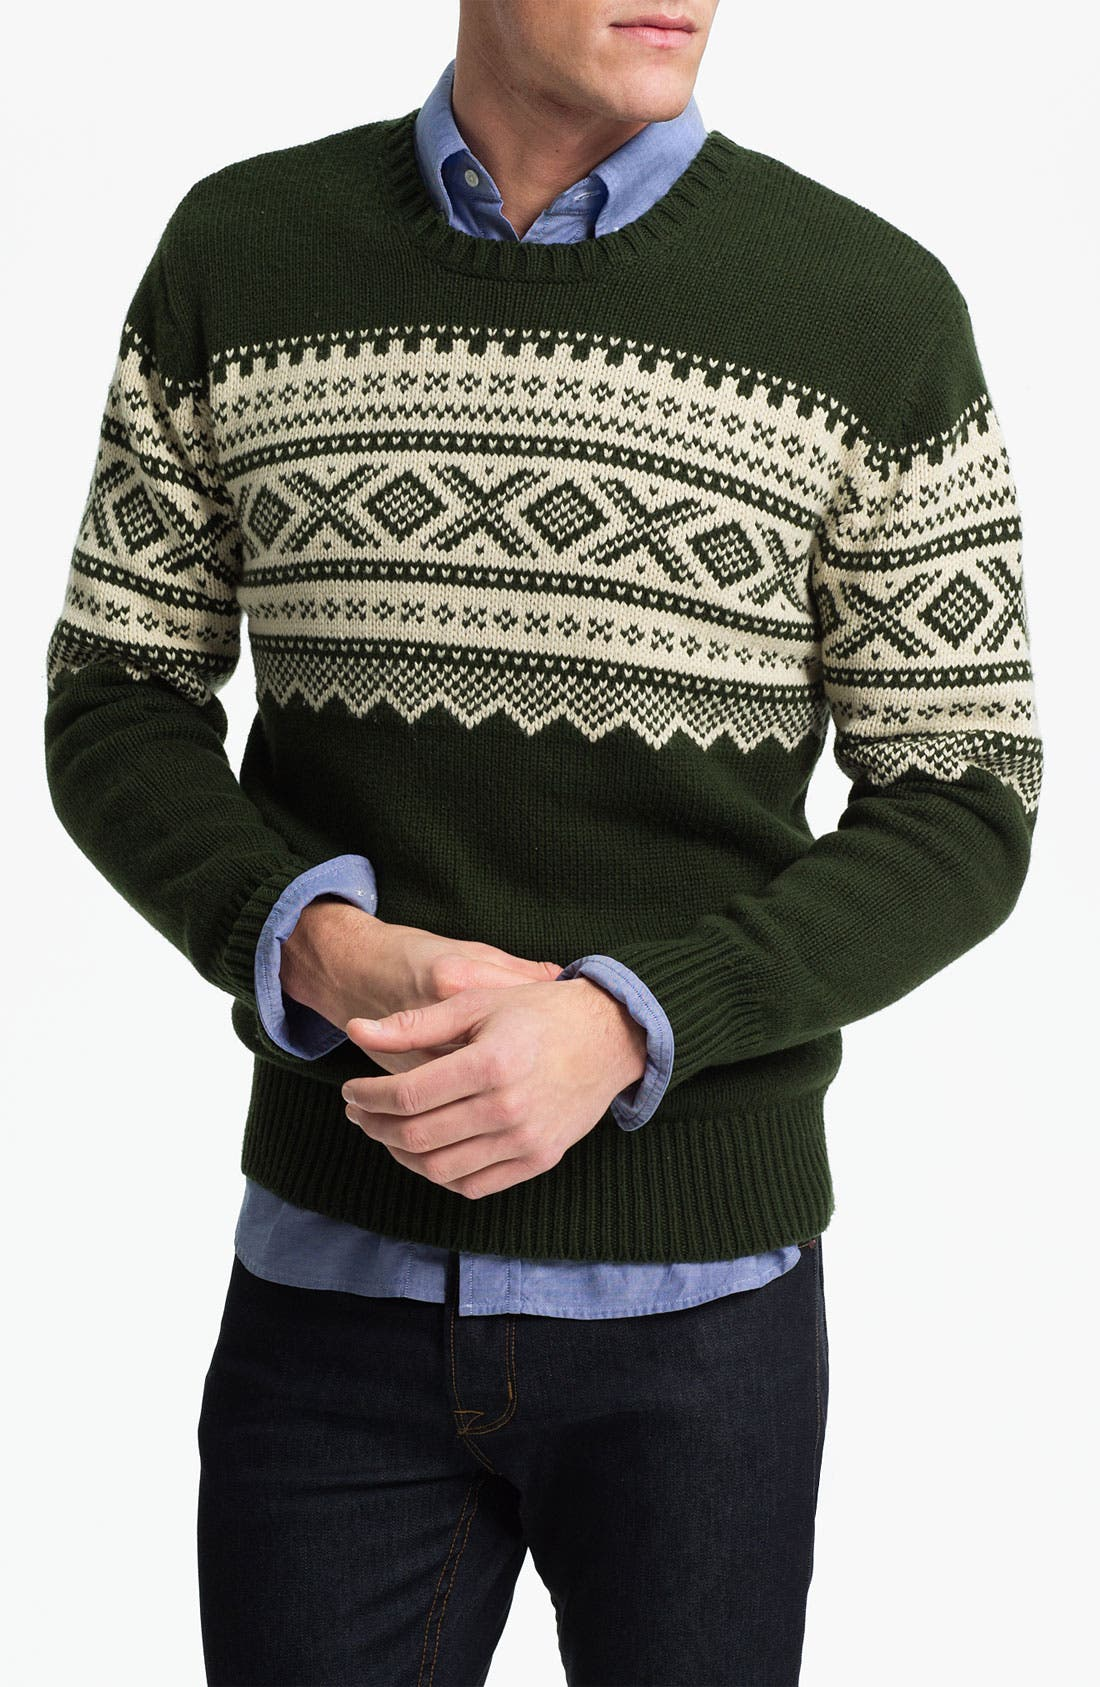 Alternate Image 1 Selected - Gant Rugger Jacquard Crewneck Sweater